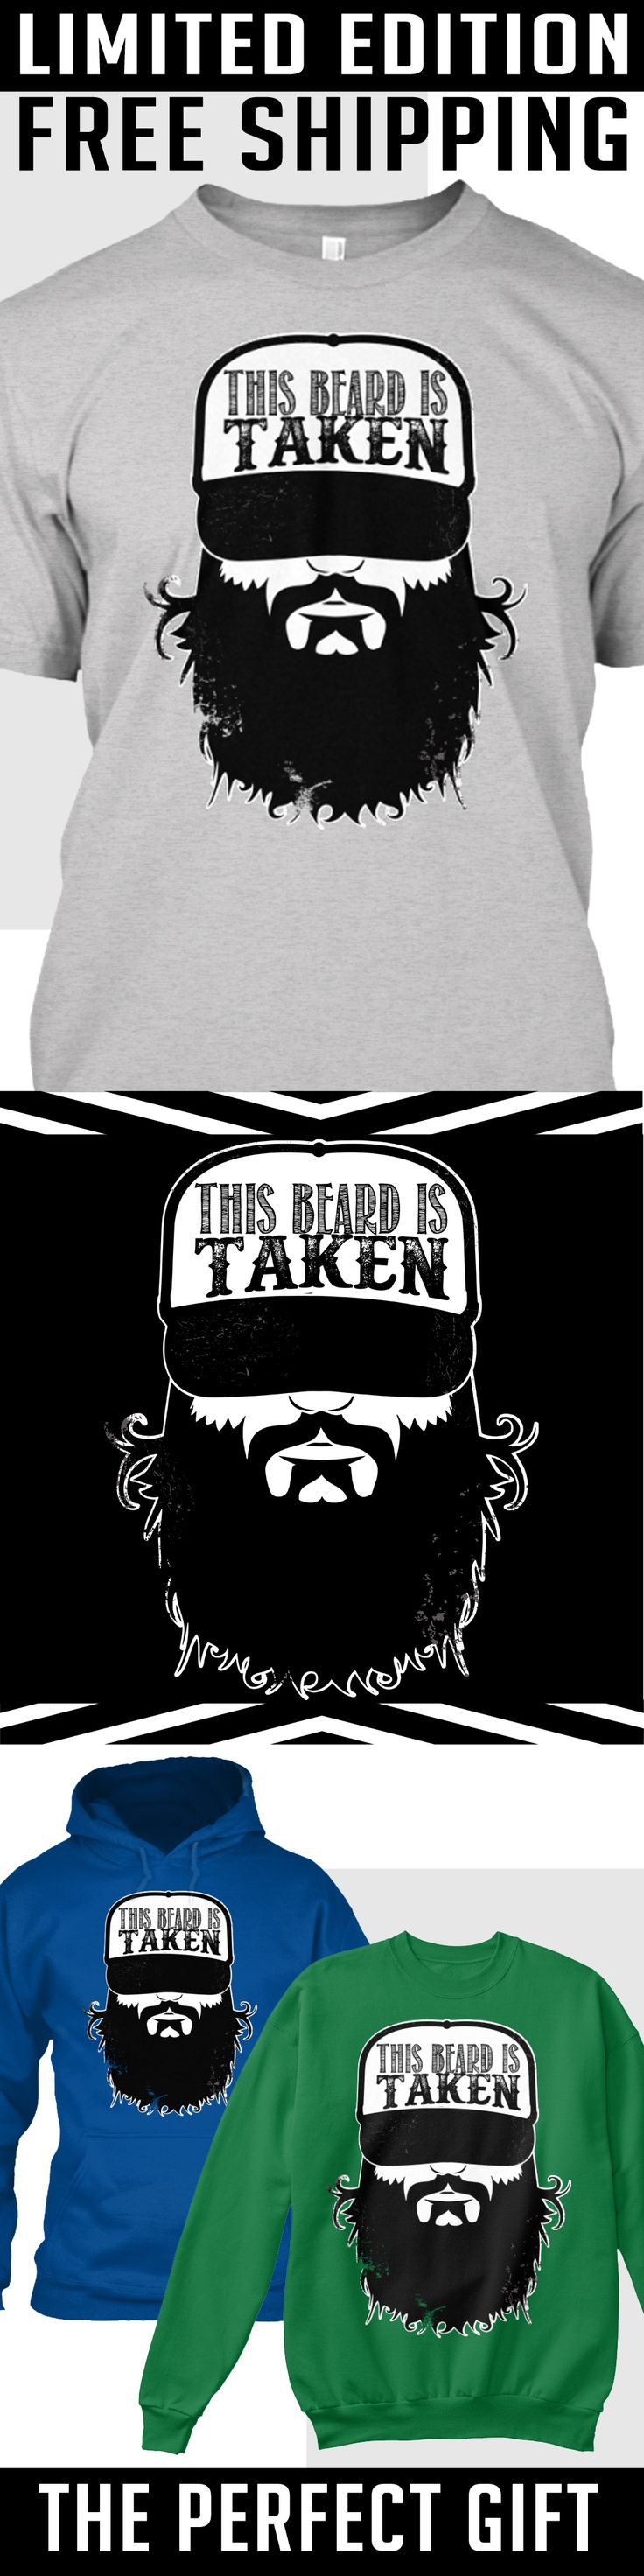 This Beard Is Taken - Limited Edition. Only 2 days left for free shipping, get it now!